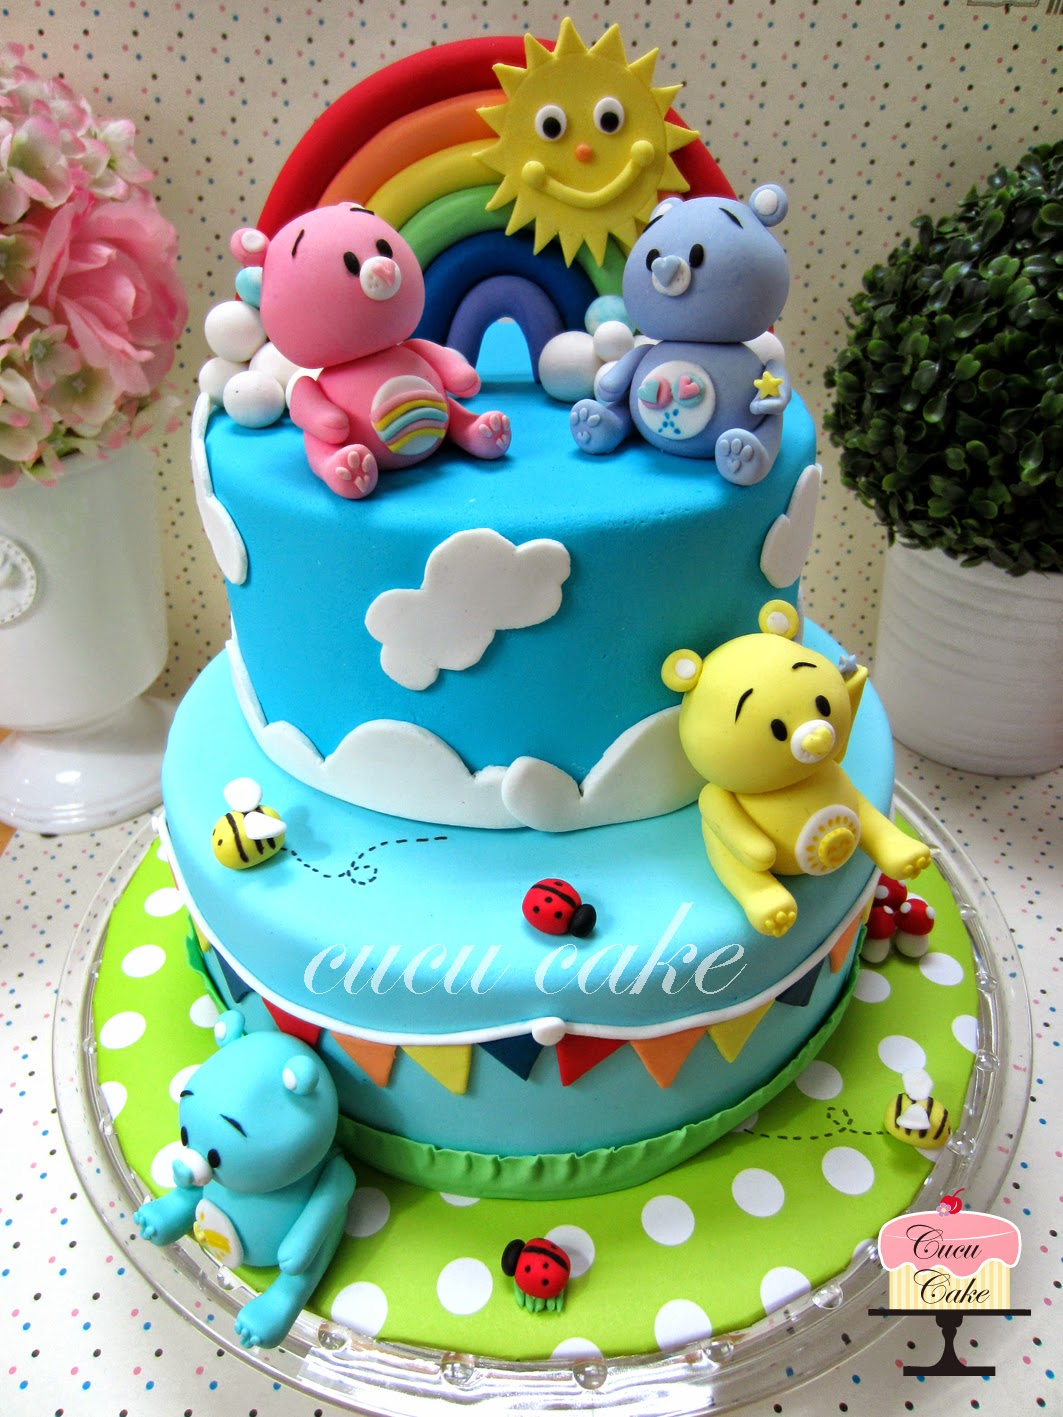 The Care Bears Dreamland Cucu Cake